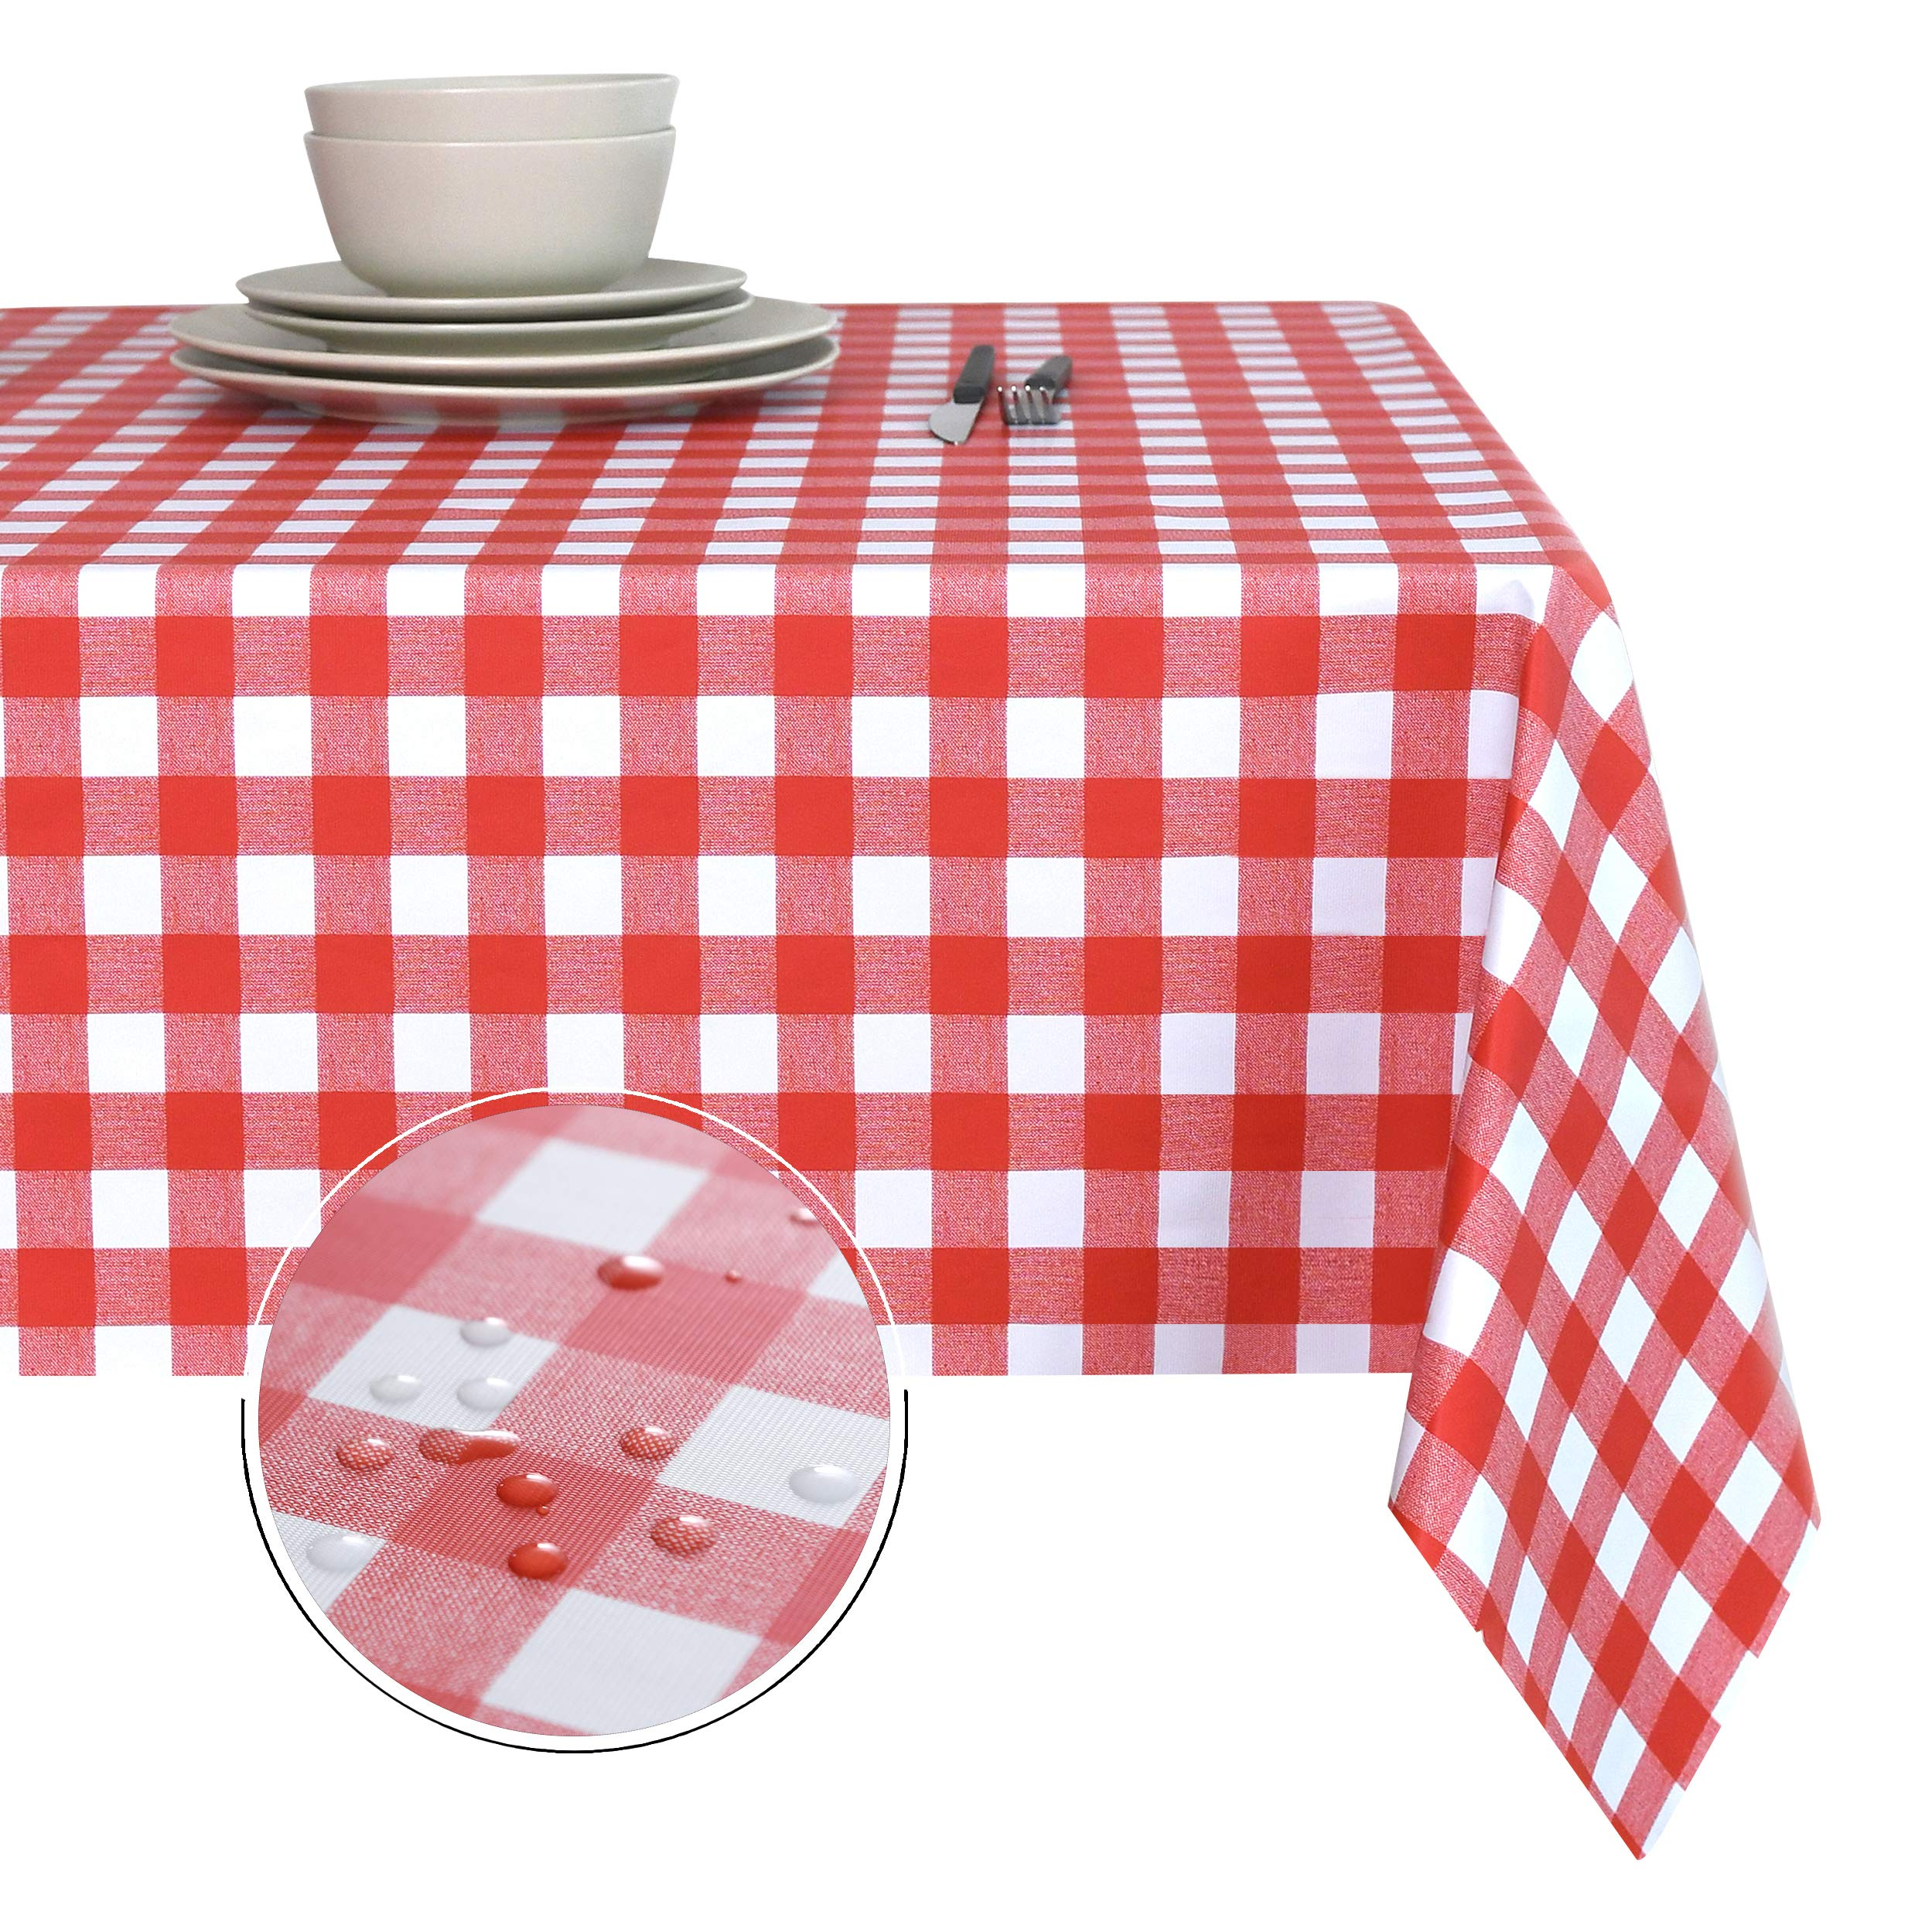 Obstal 100% Waterproof PVC Table Cloth, Oil-Proof Spill-Proof Vinyl Rectangle Tablecloth, Wipeable Table Cover for Outdoor and Indoor Use by Obstal